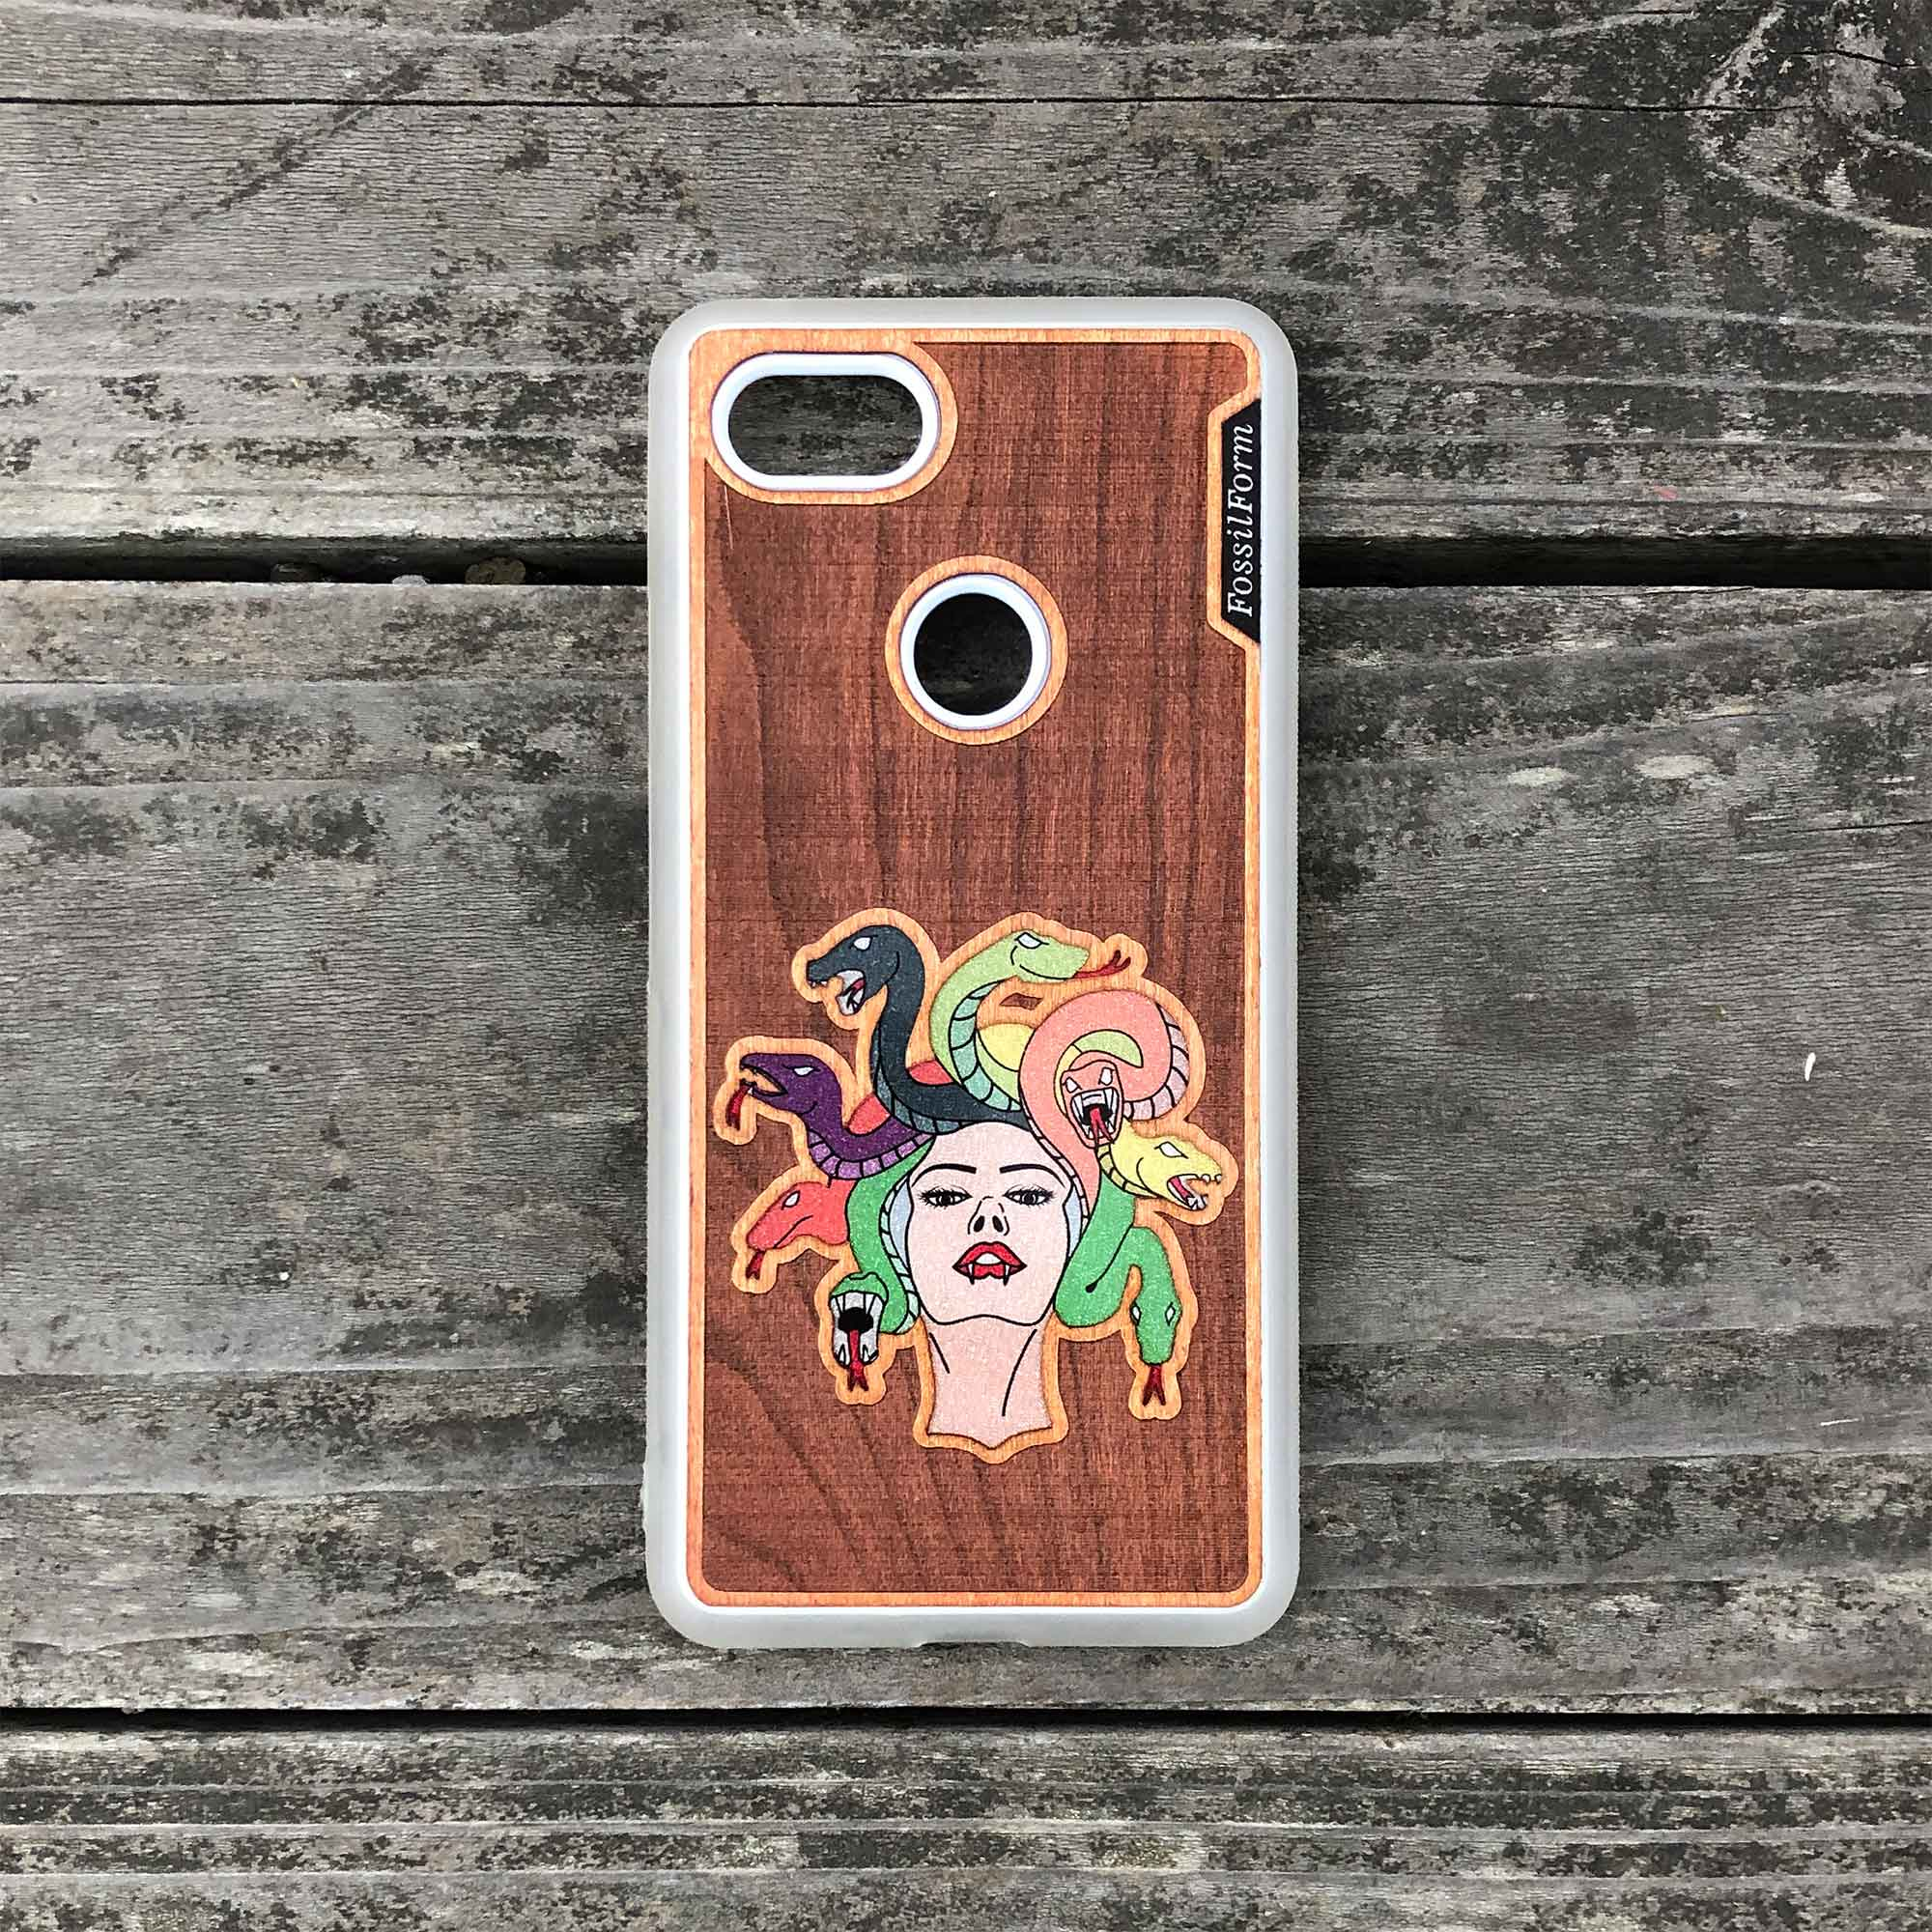 Medusa - Engraved Wood & Resin Case - White